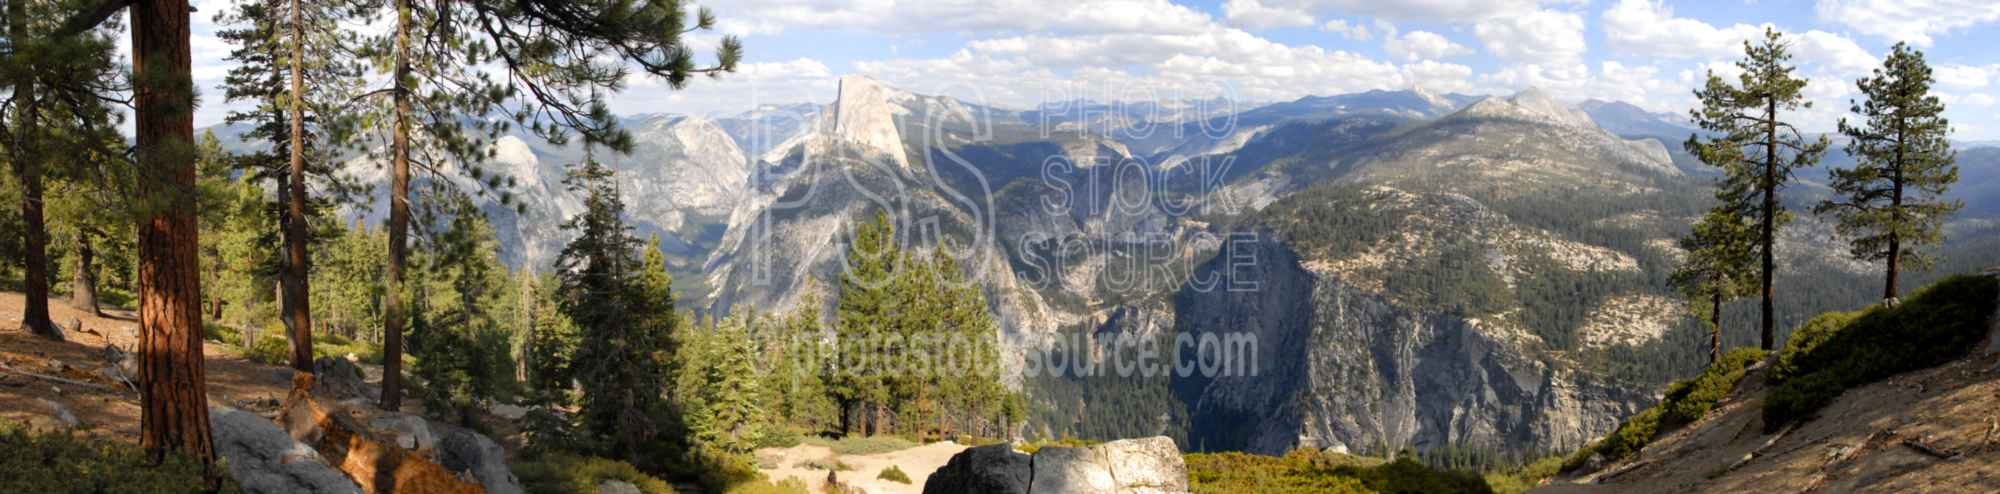 Yosemite Valley Half Dome,mountain,cliff,half dome,washburn point,panorama,mountains panoramas